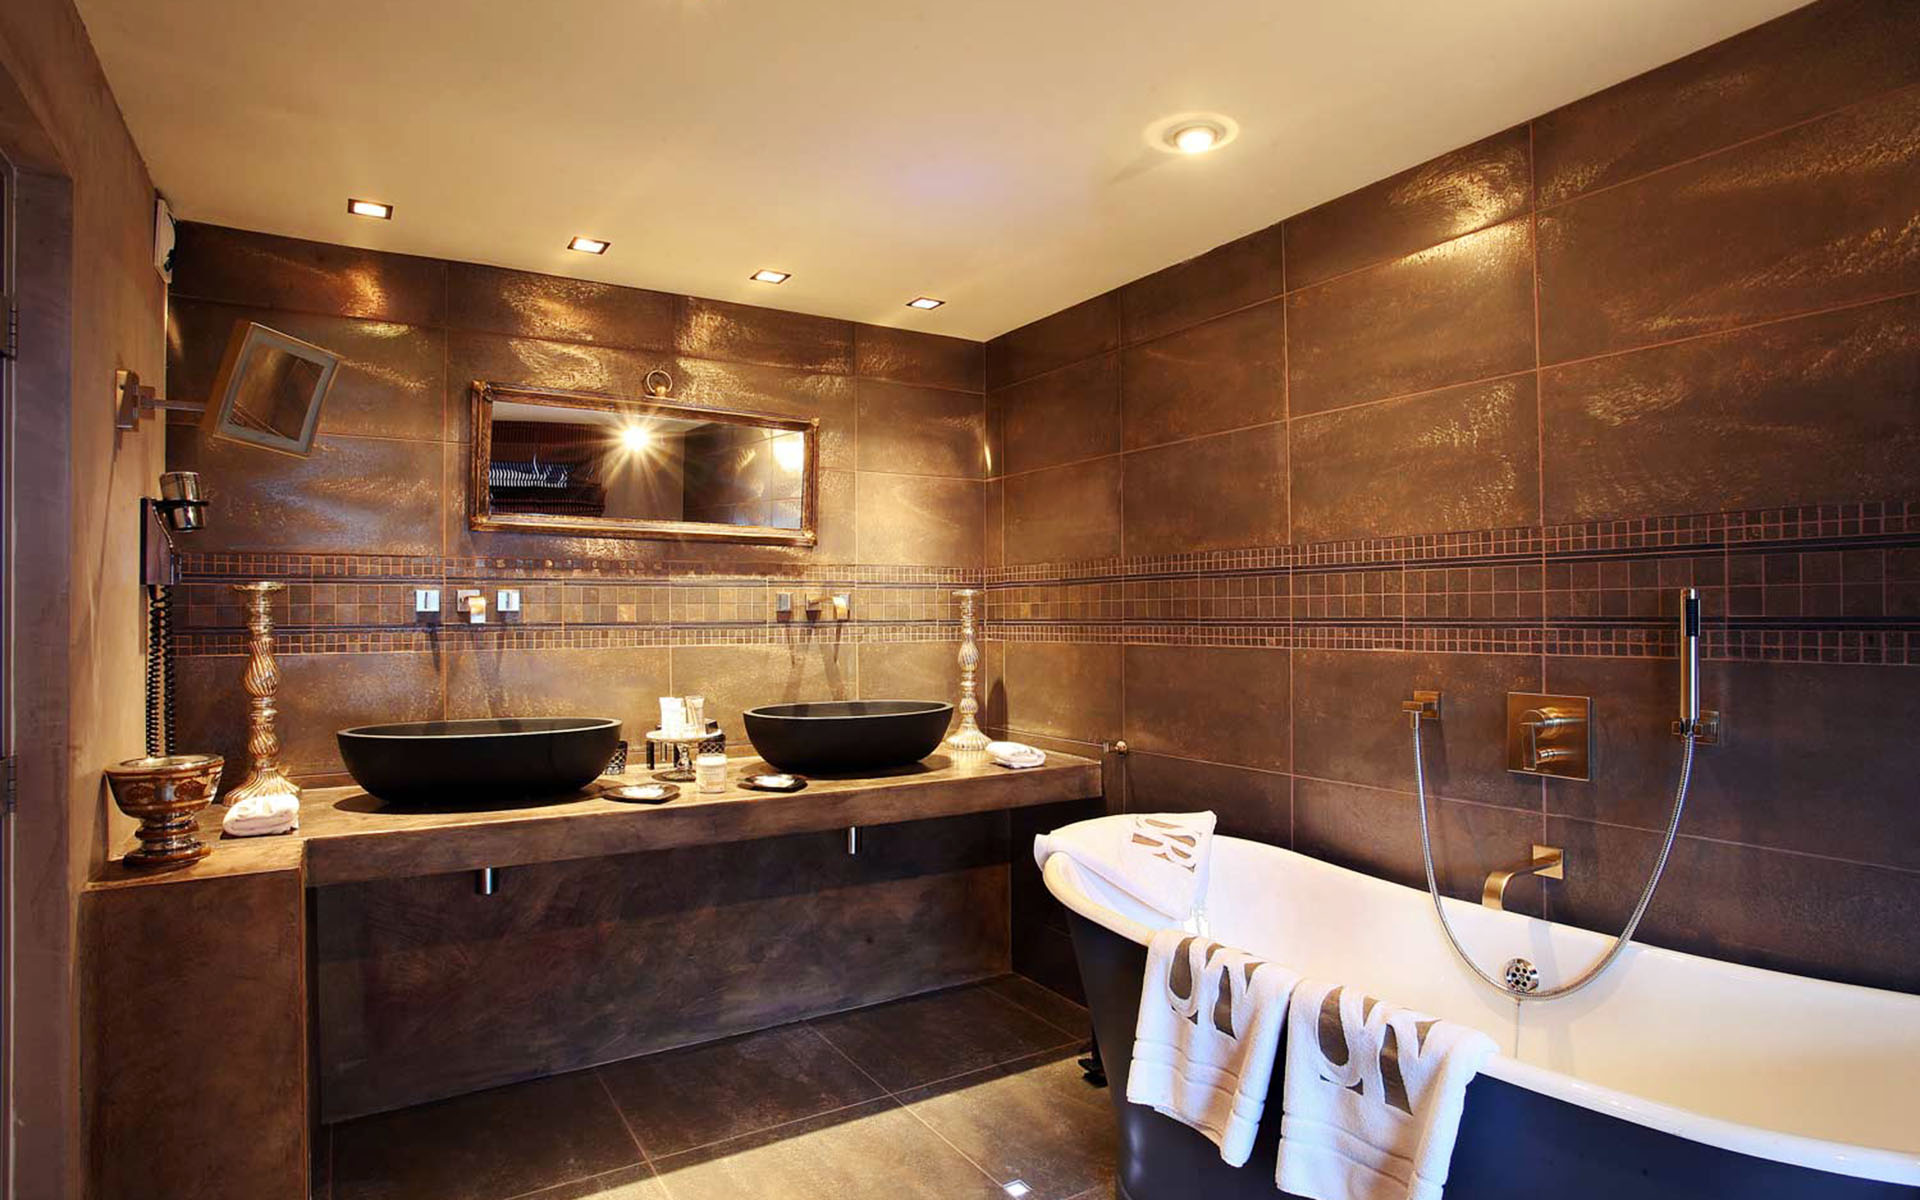 290/CHALETS/LOVE/saint_roch_courchevel_appartement_love_4.jpg